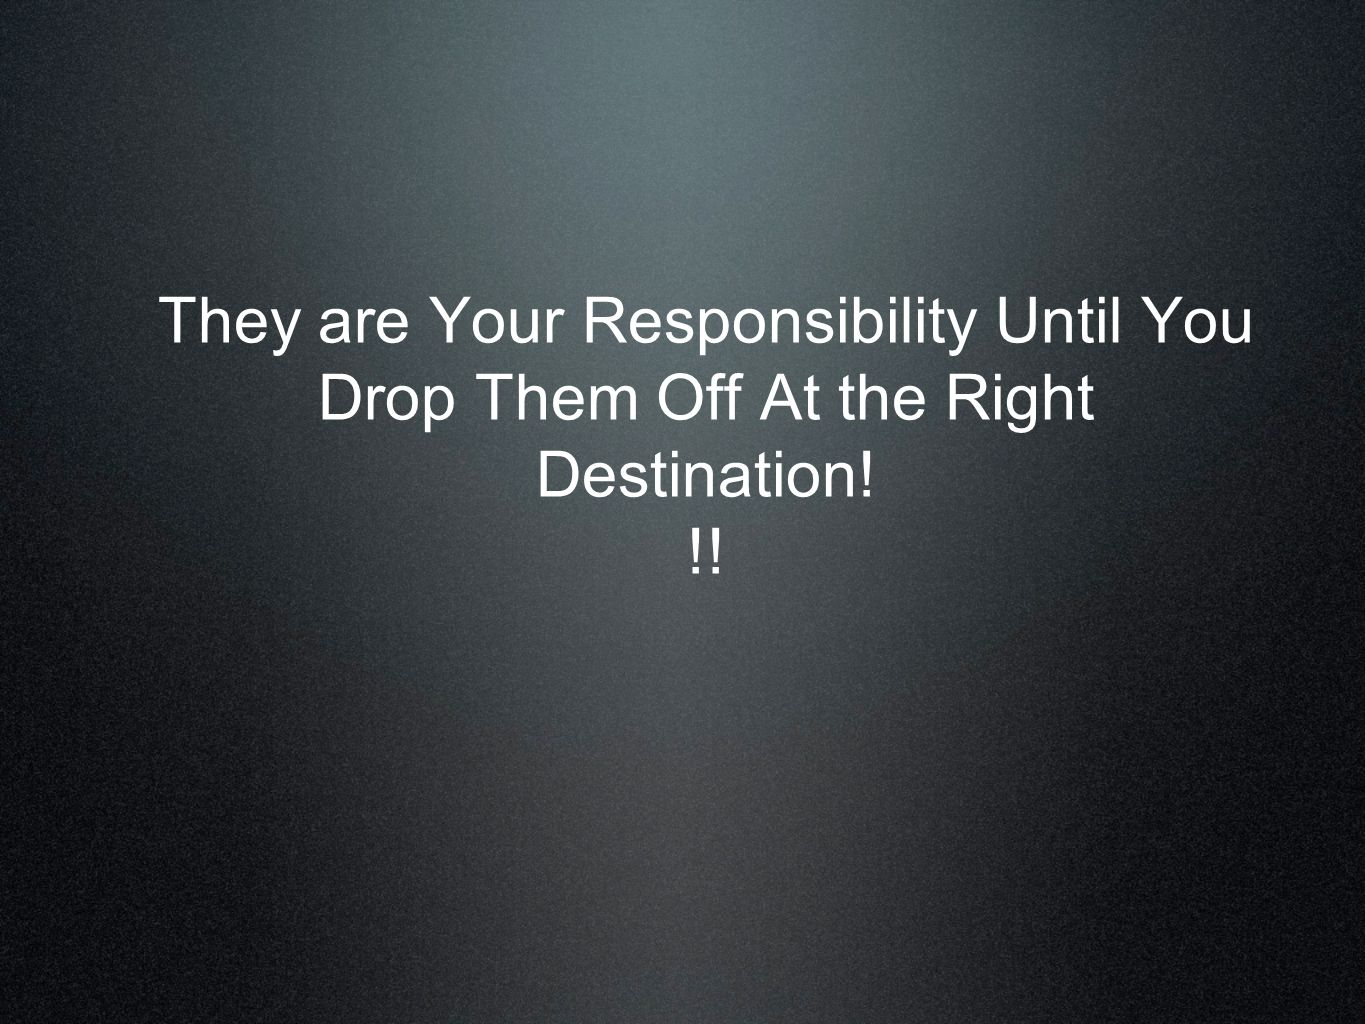 They are Your Responsibility Until You Drop Them Off At the Right Destination! !!